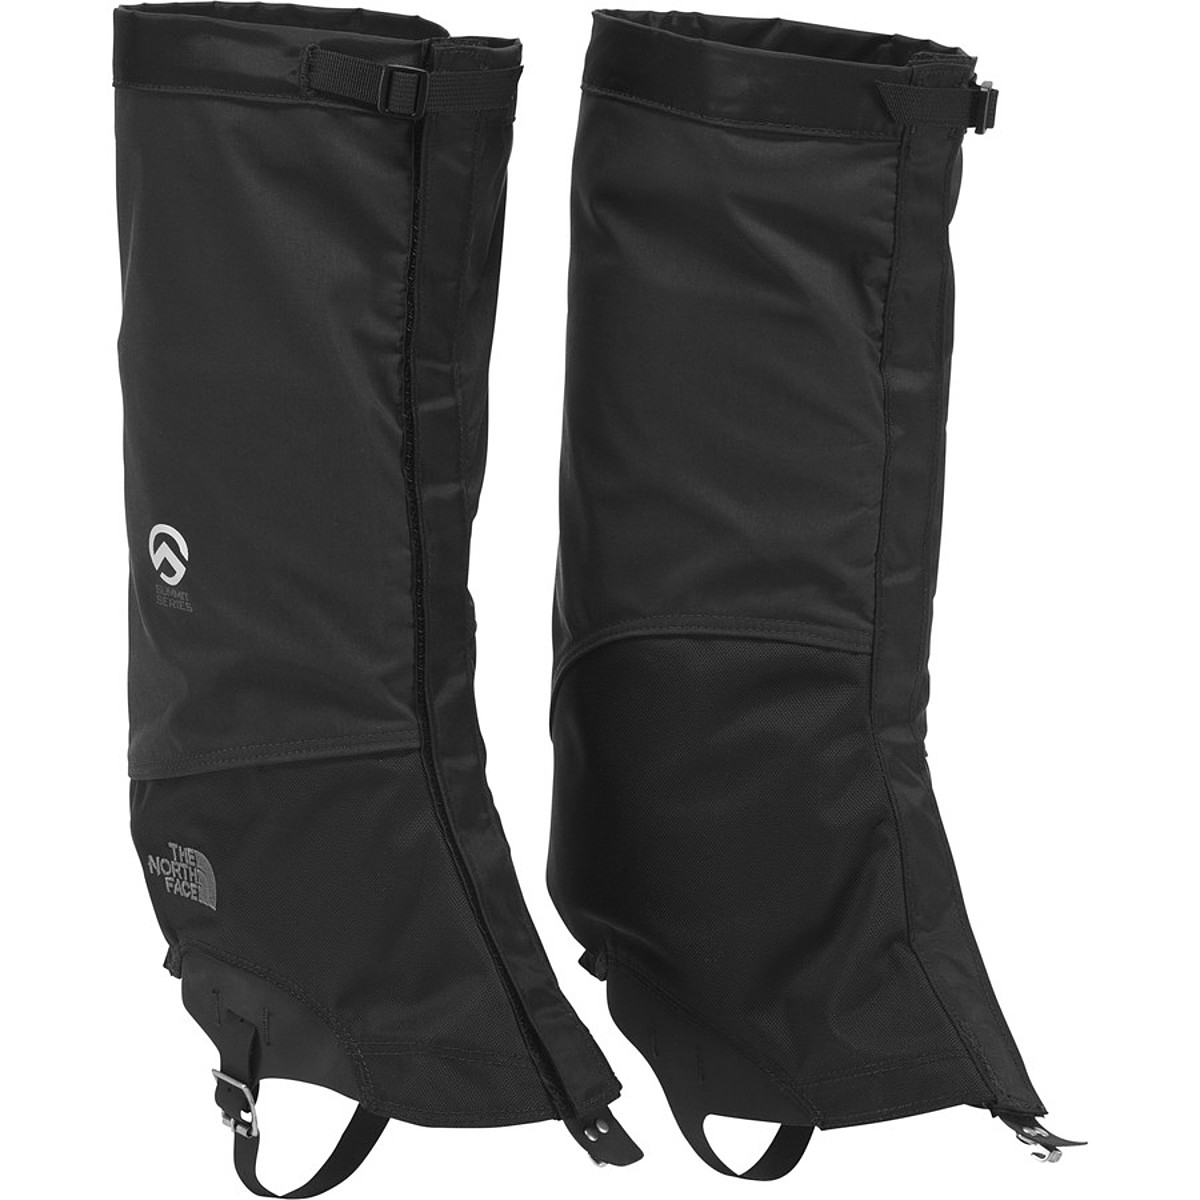 The North Face Gore-Tex Gaiters